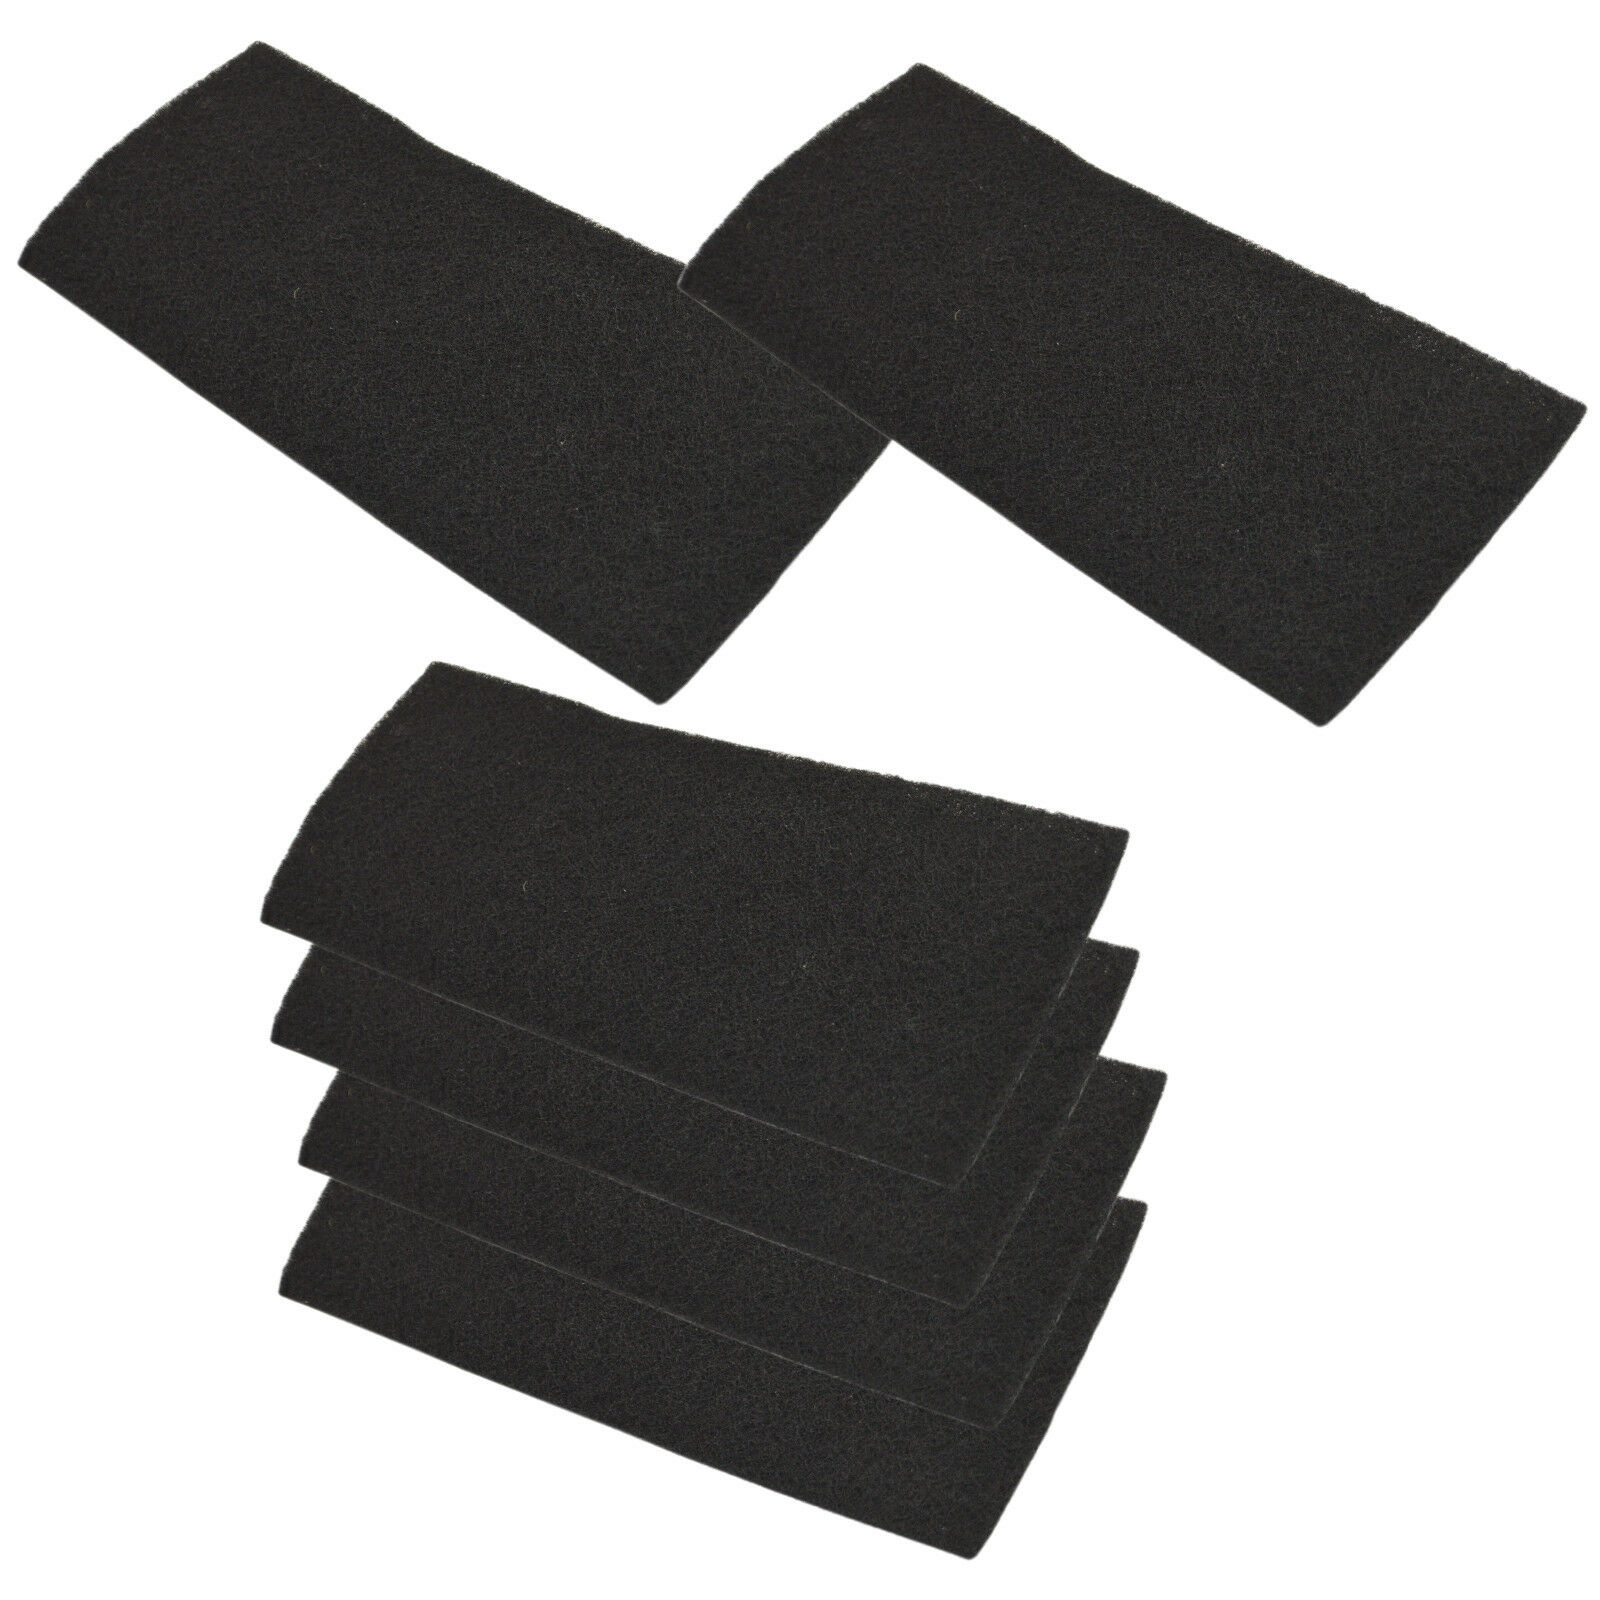 6x Carbon Filters for Bionaire BAP Series Air Purifiers, BAPF31 Replacement